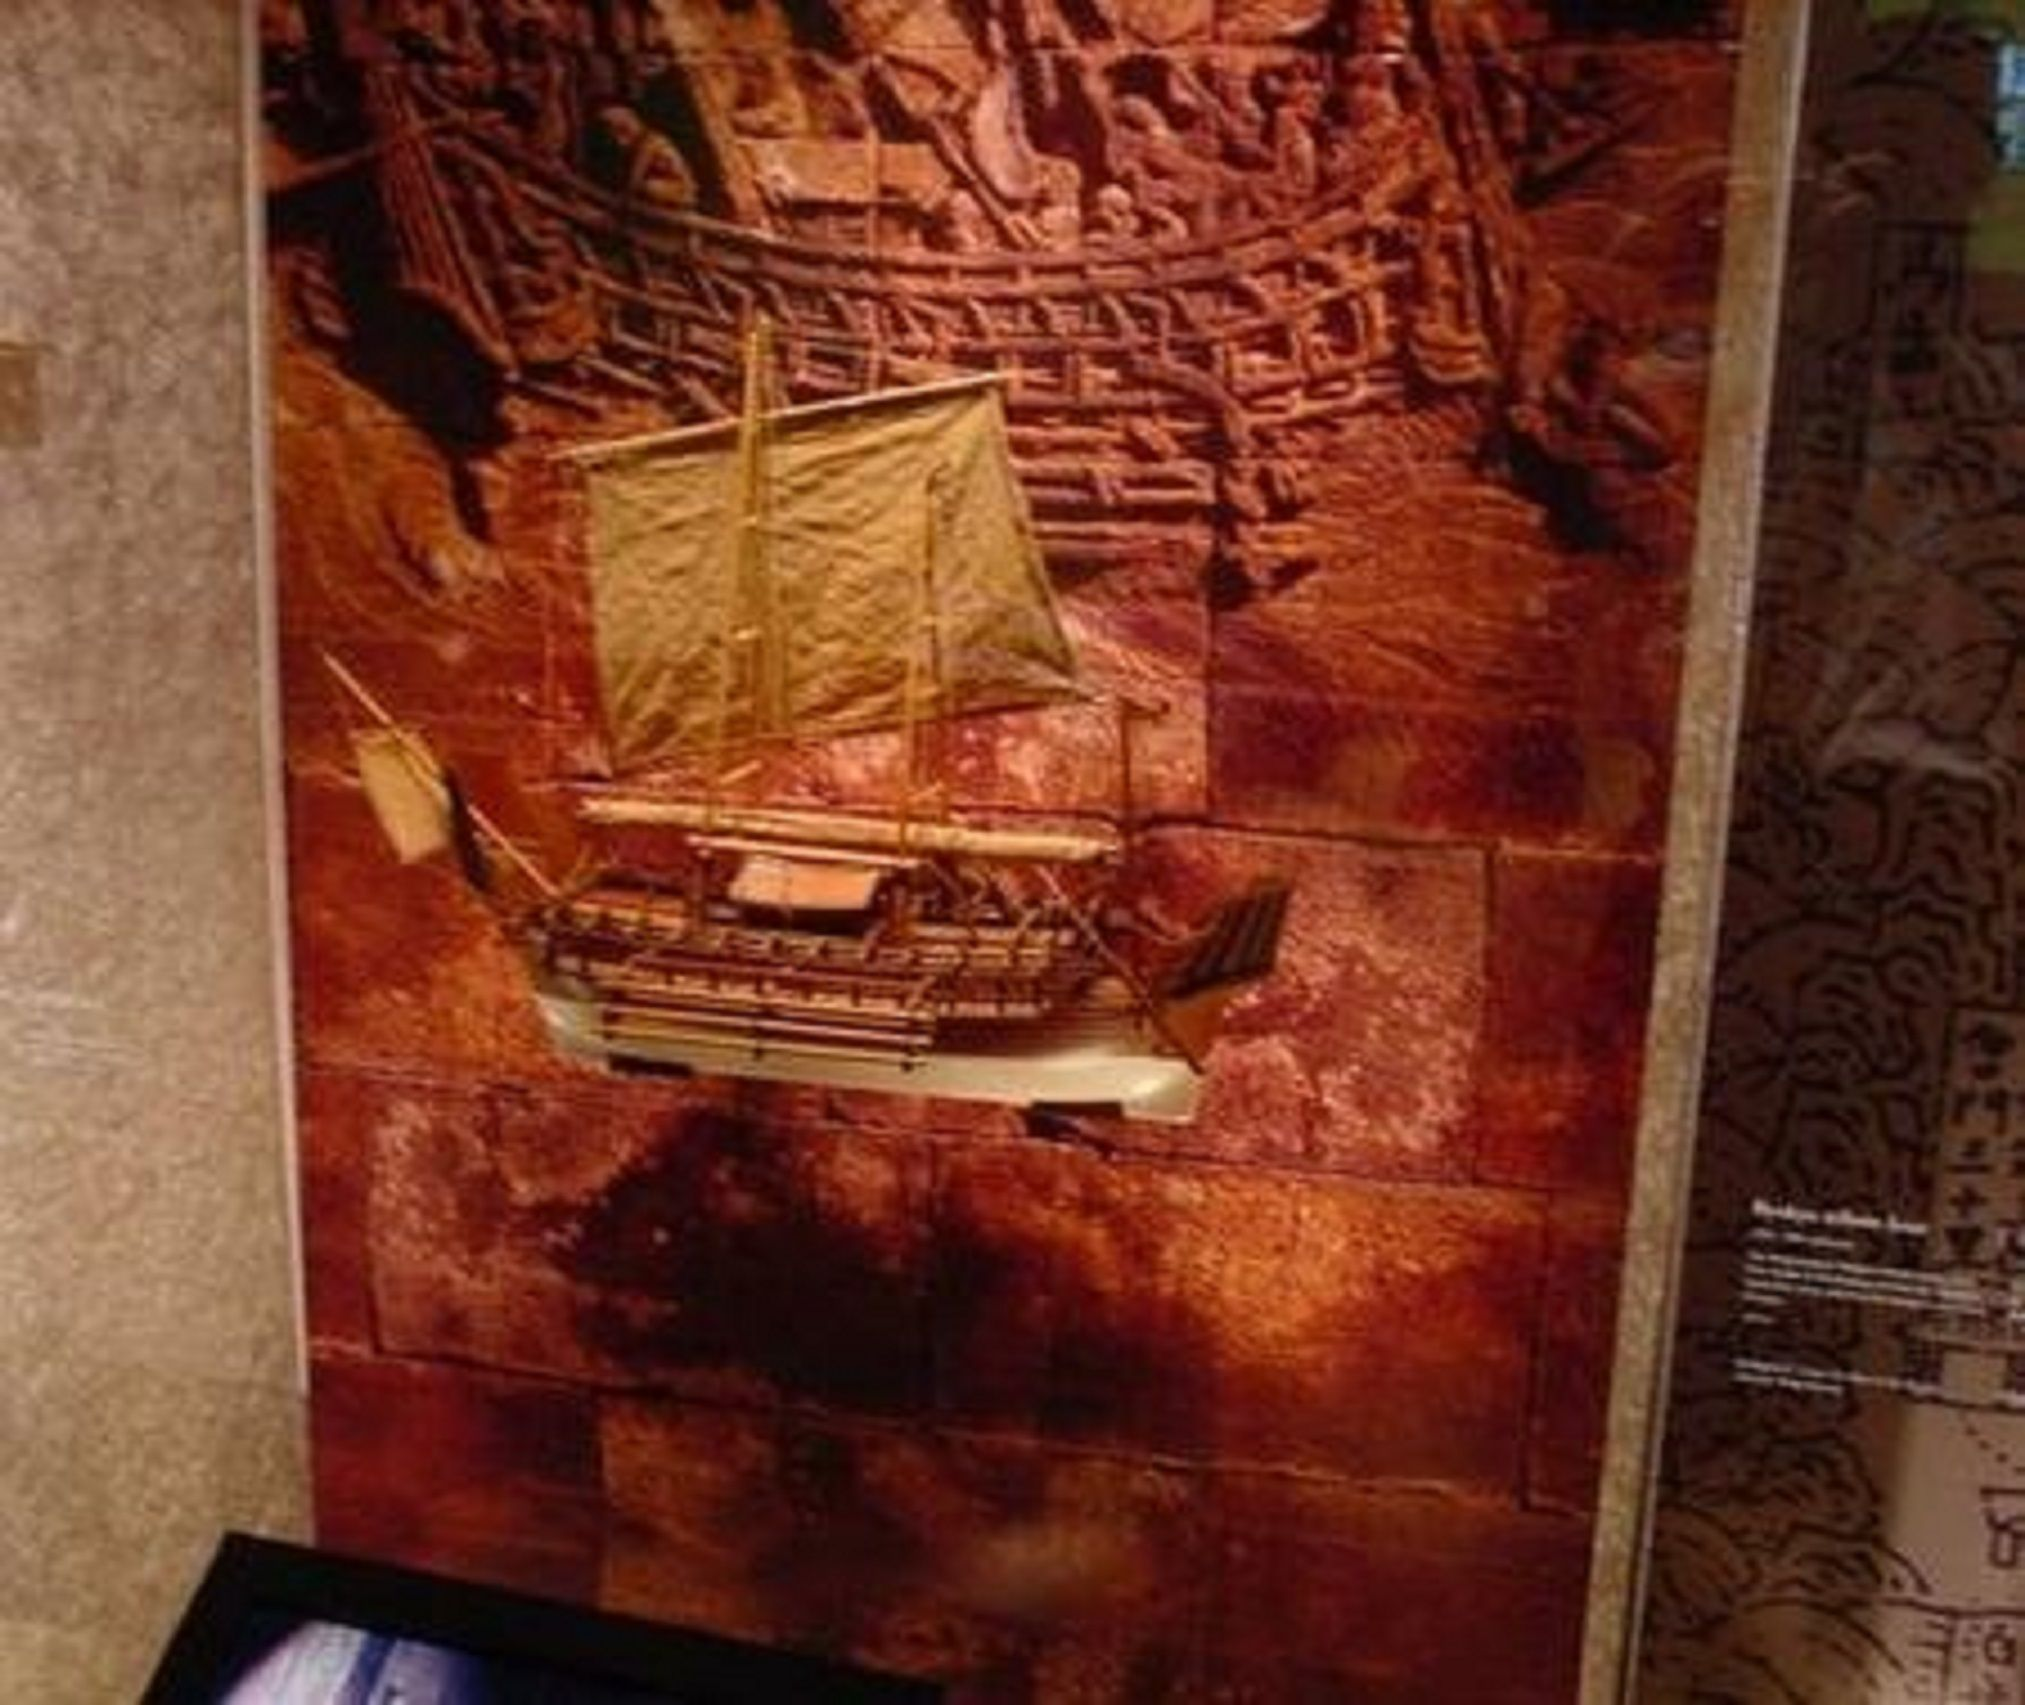 229-6979-Borobudur-model-ship-Premier-Range